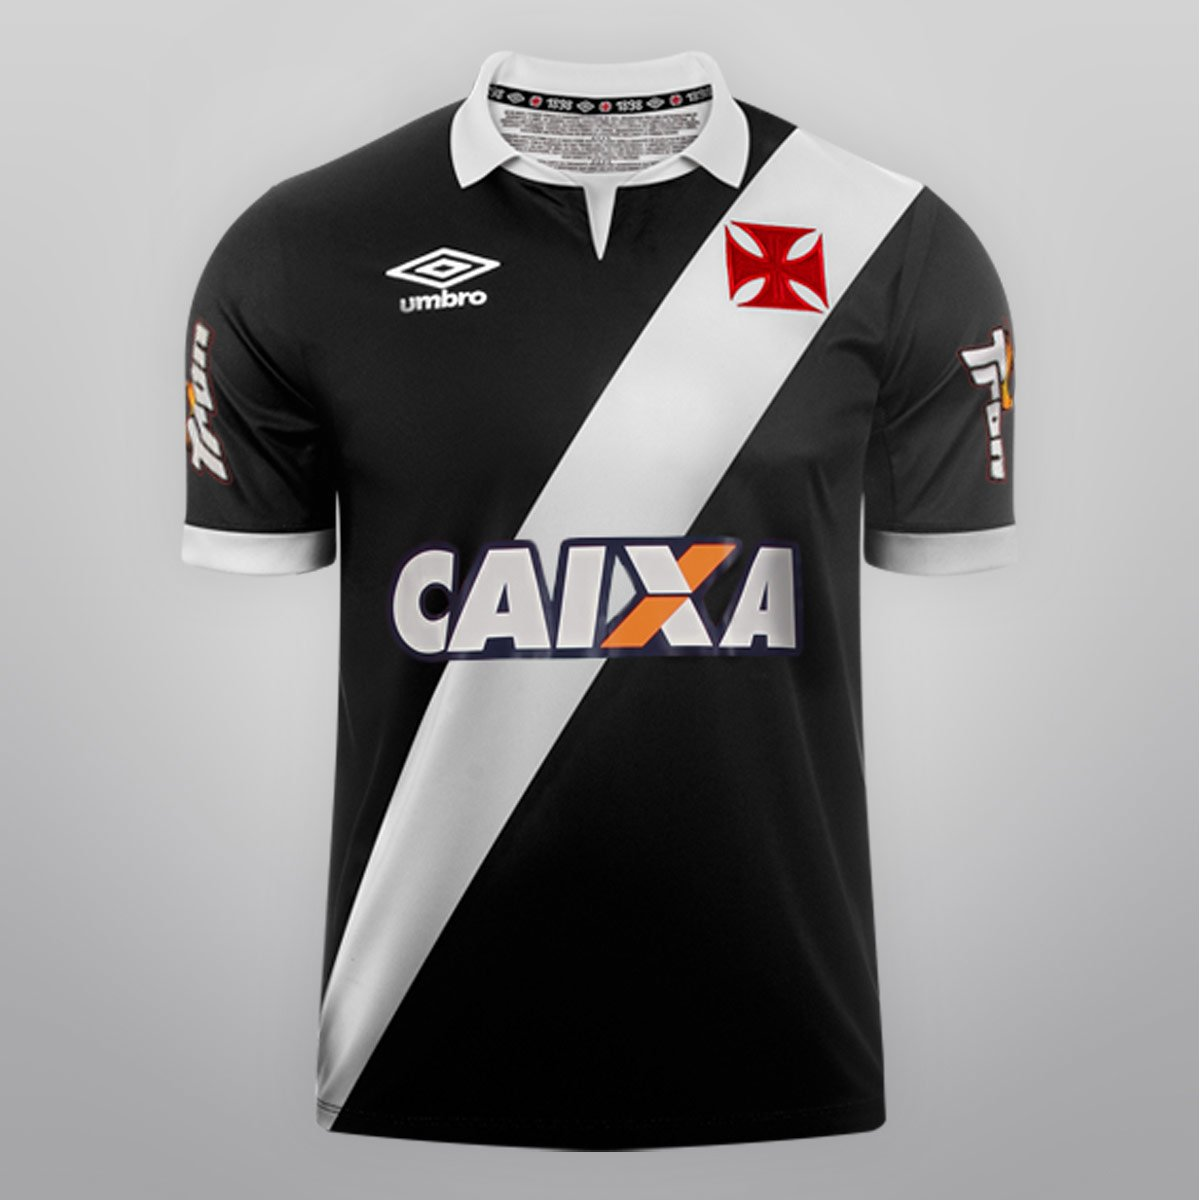 6bde3c44d2 Camisa Umbro Vasco I 2014 nº 10 | Shop Vasco